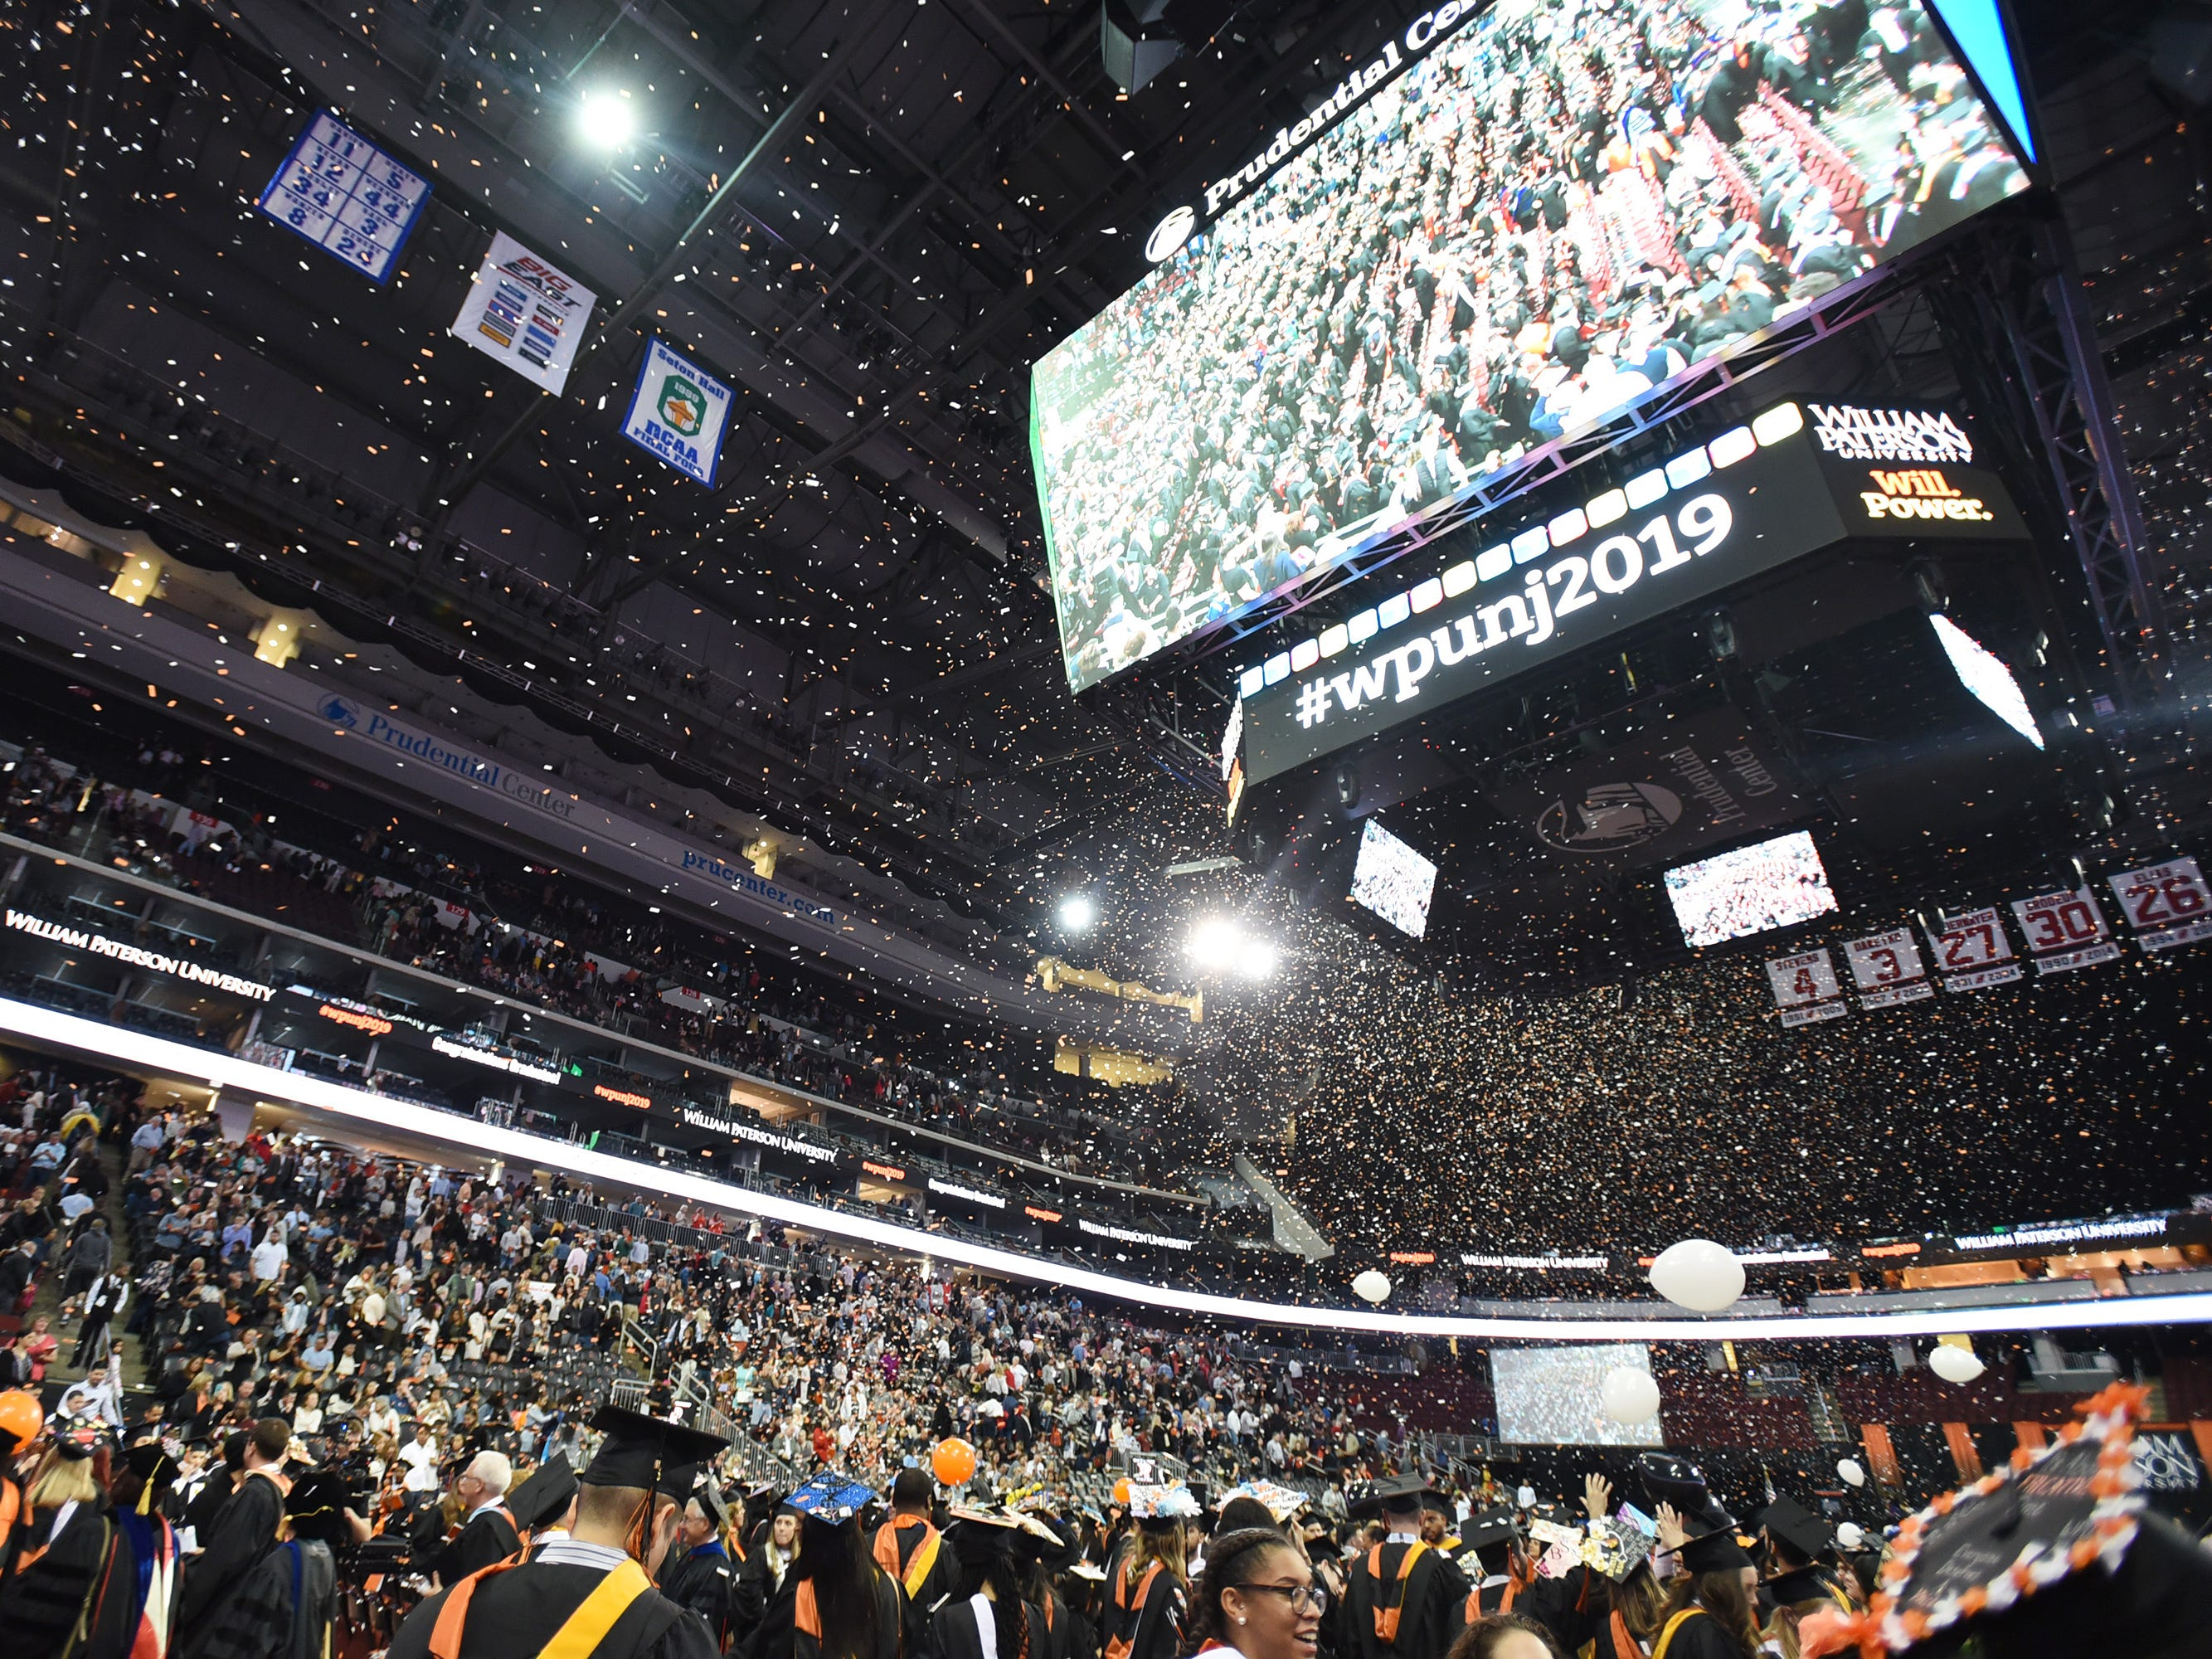 during the William Paterson University 2019 Commencement at the Prudential Center in Newark on 05/15/19.